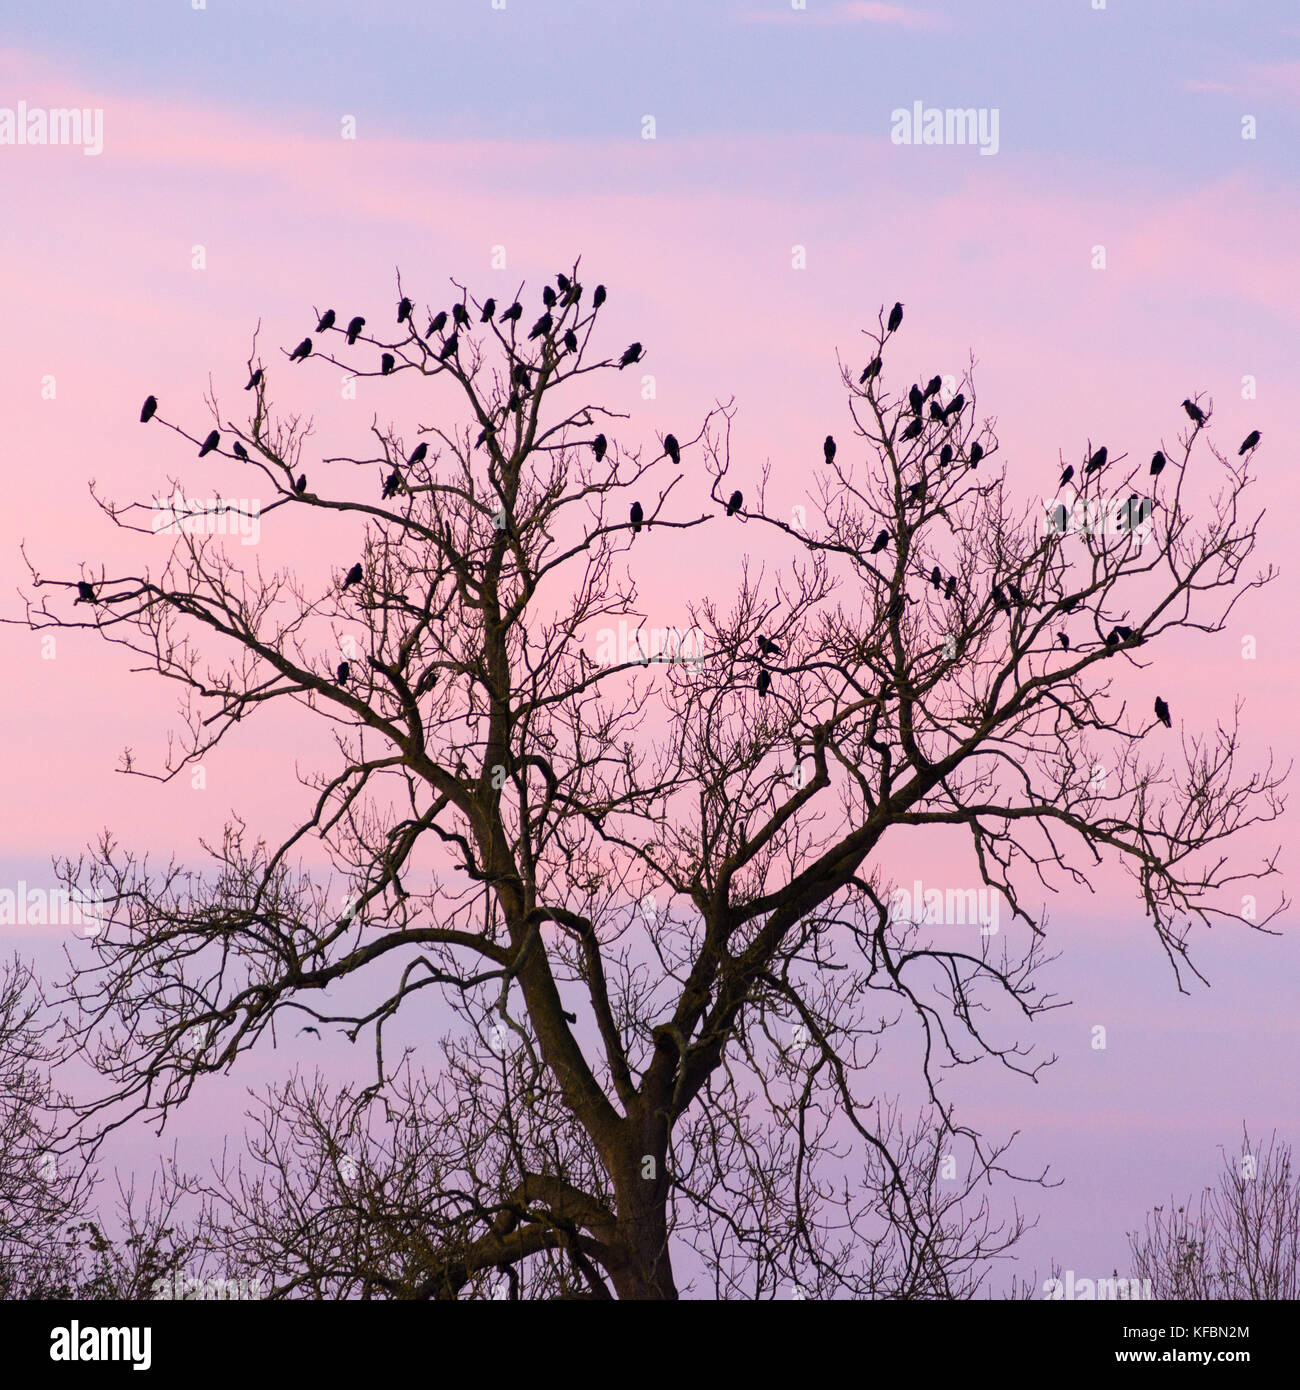 Avon Valley, Fordingbridge, New Forest, Hampshire, UK, 27th October 2017. Birds gather in a tree top on a cool, Stock Photo